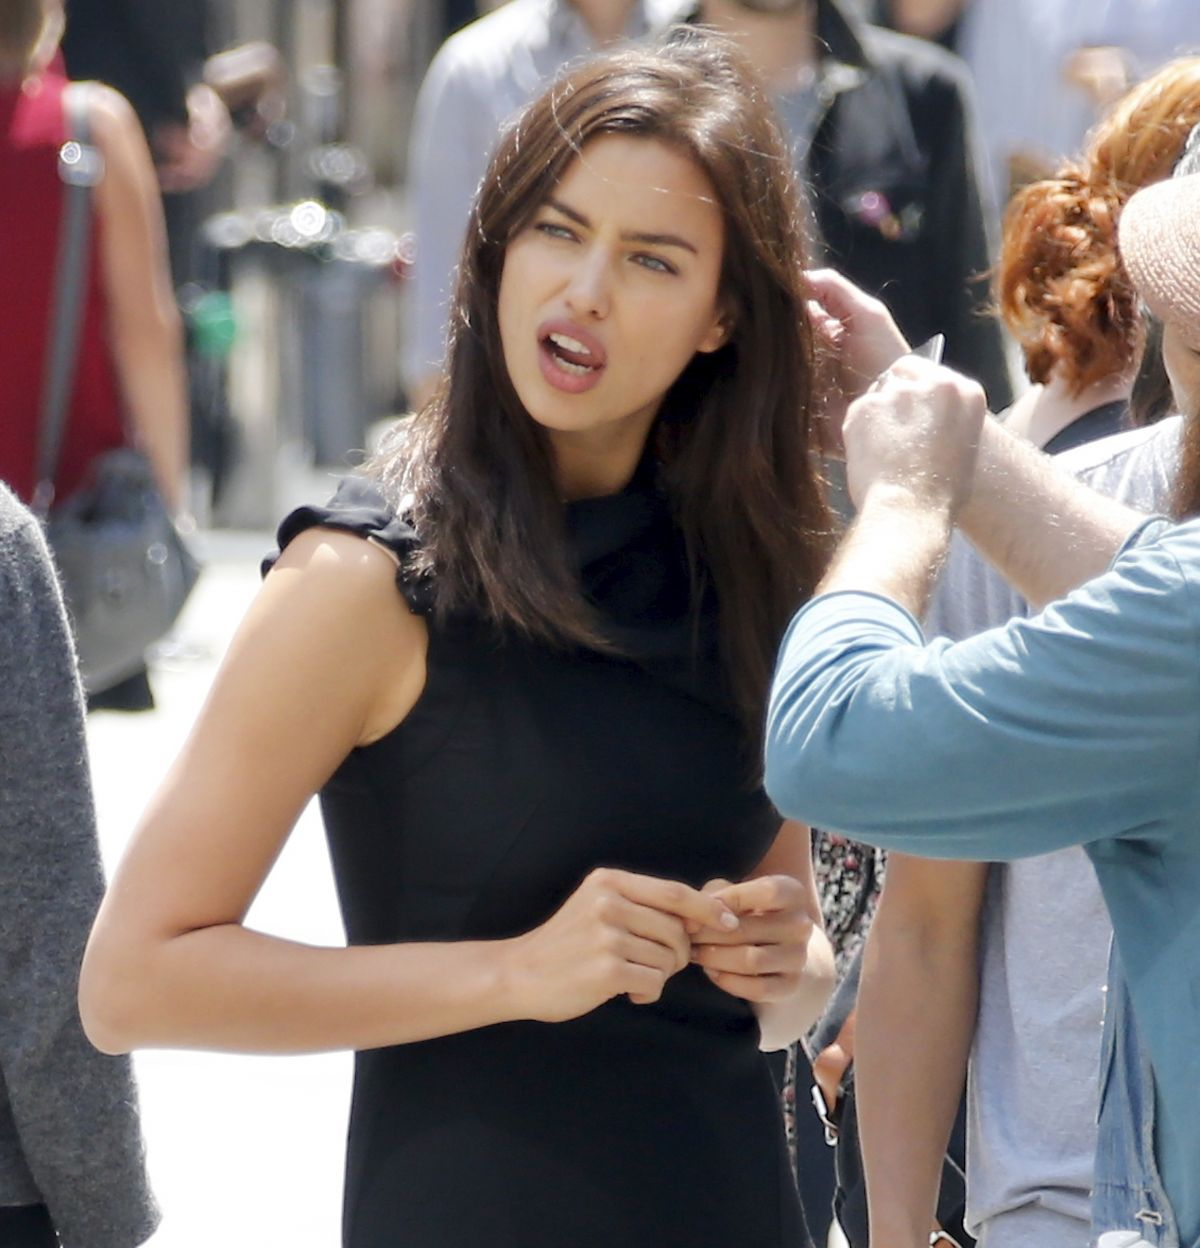 Irina Shayk on the set of a Photoshoot in New York City